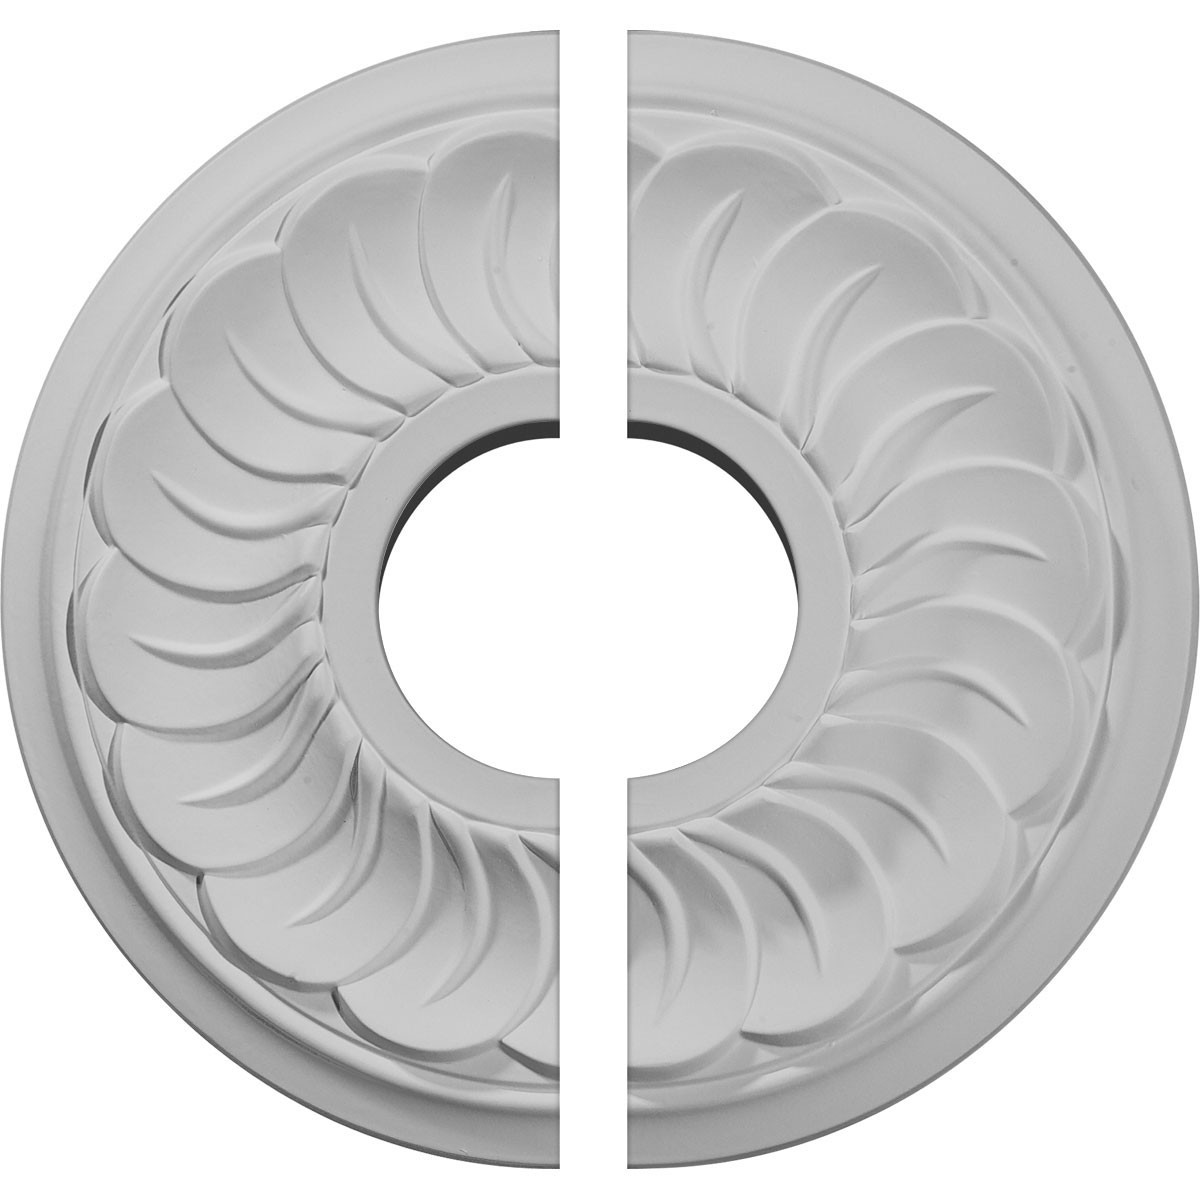 """EM-CM11BL2 - 11 3/4""""OD x 3 5/8""""ID x 1""""P Blackthorne Ceiling Medallion, Two Piece (Fits Canopies up to 4 7/8"""")"""